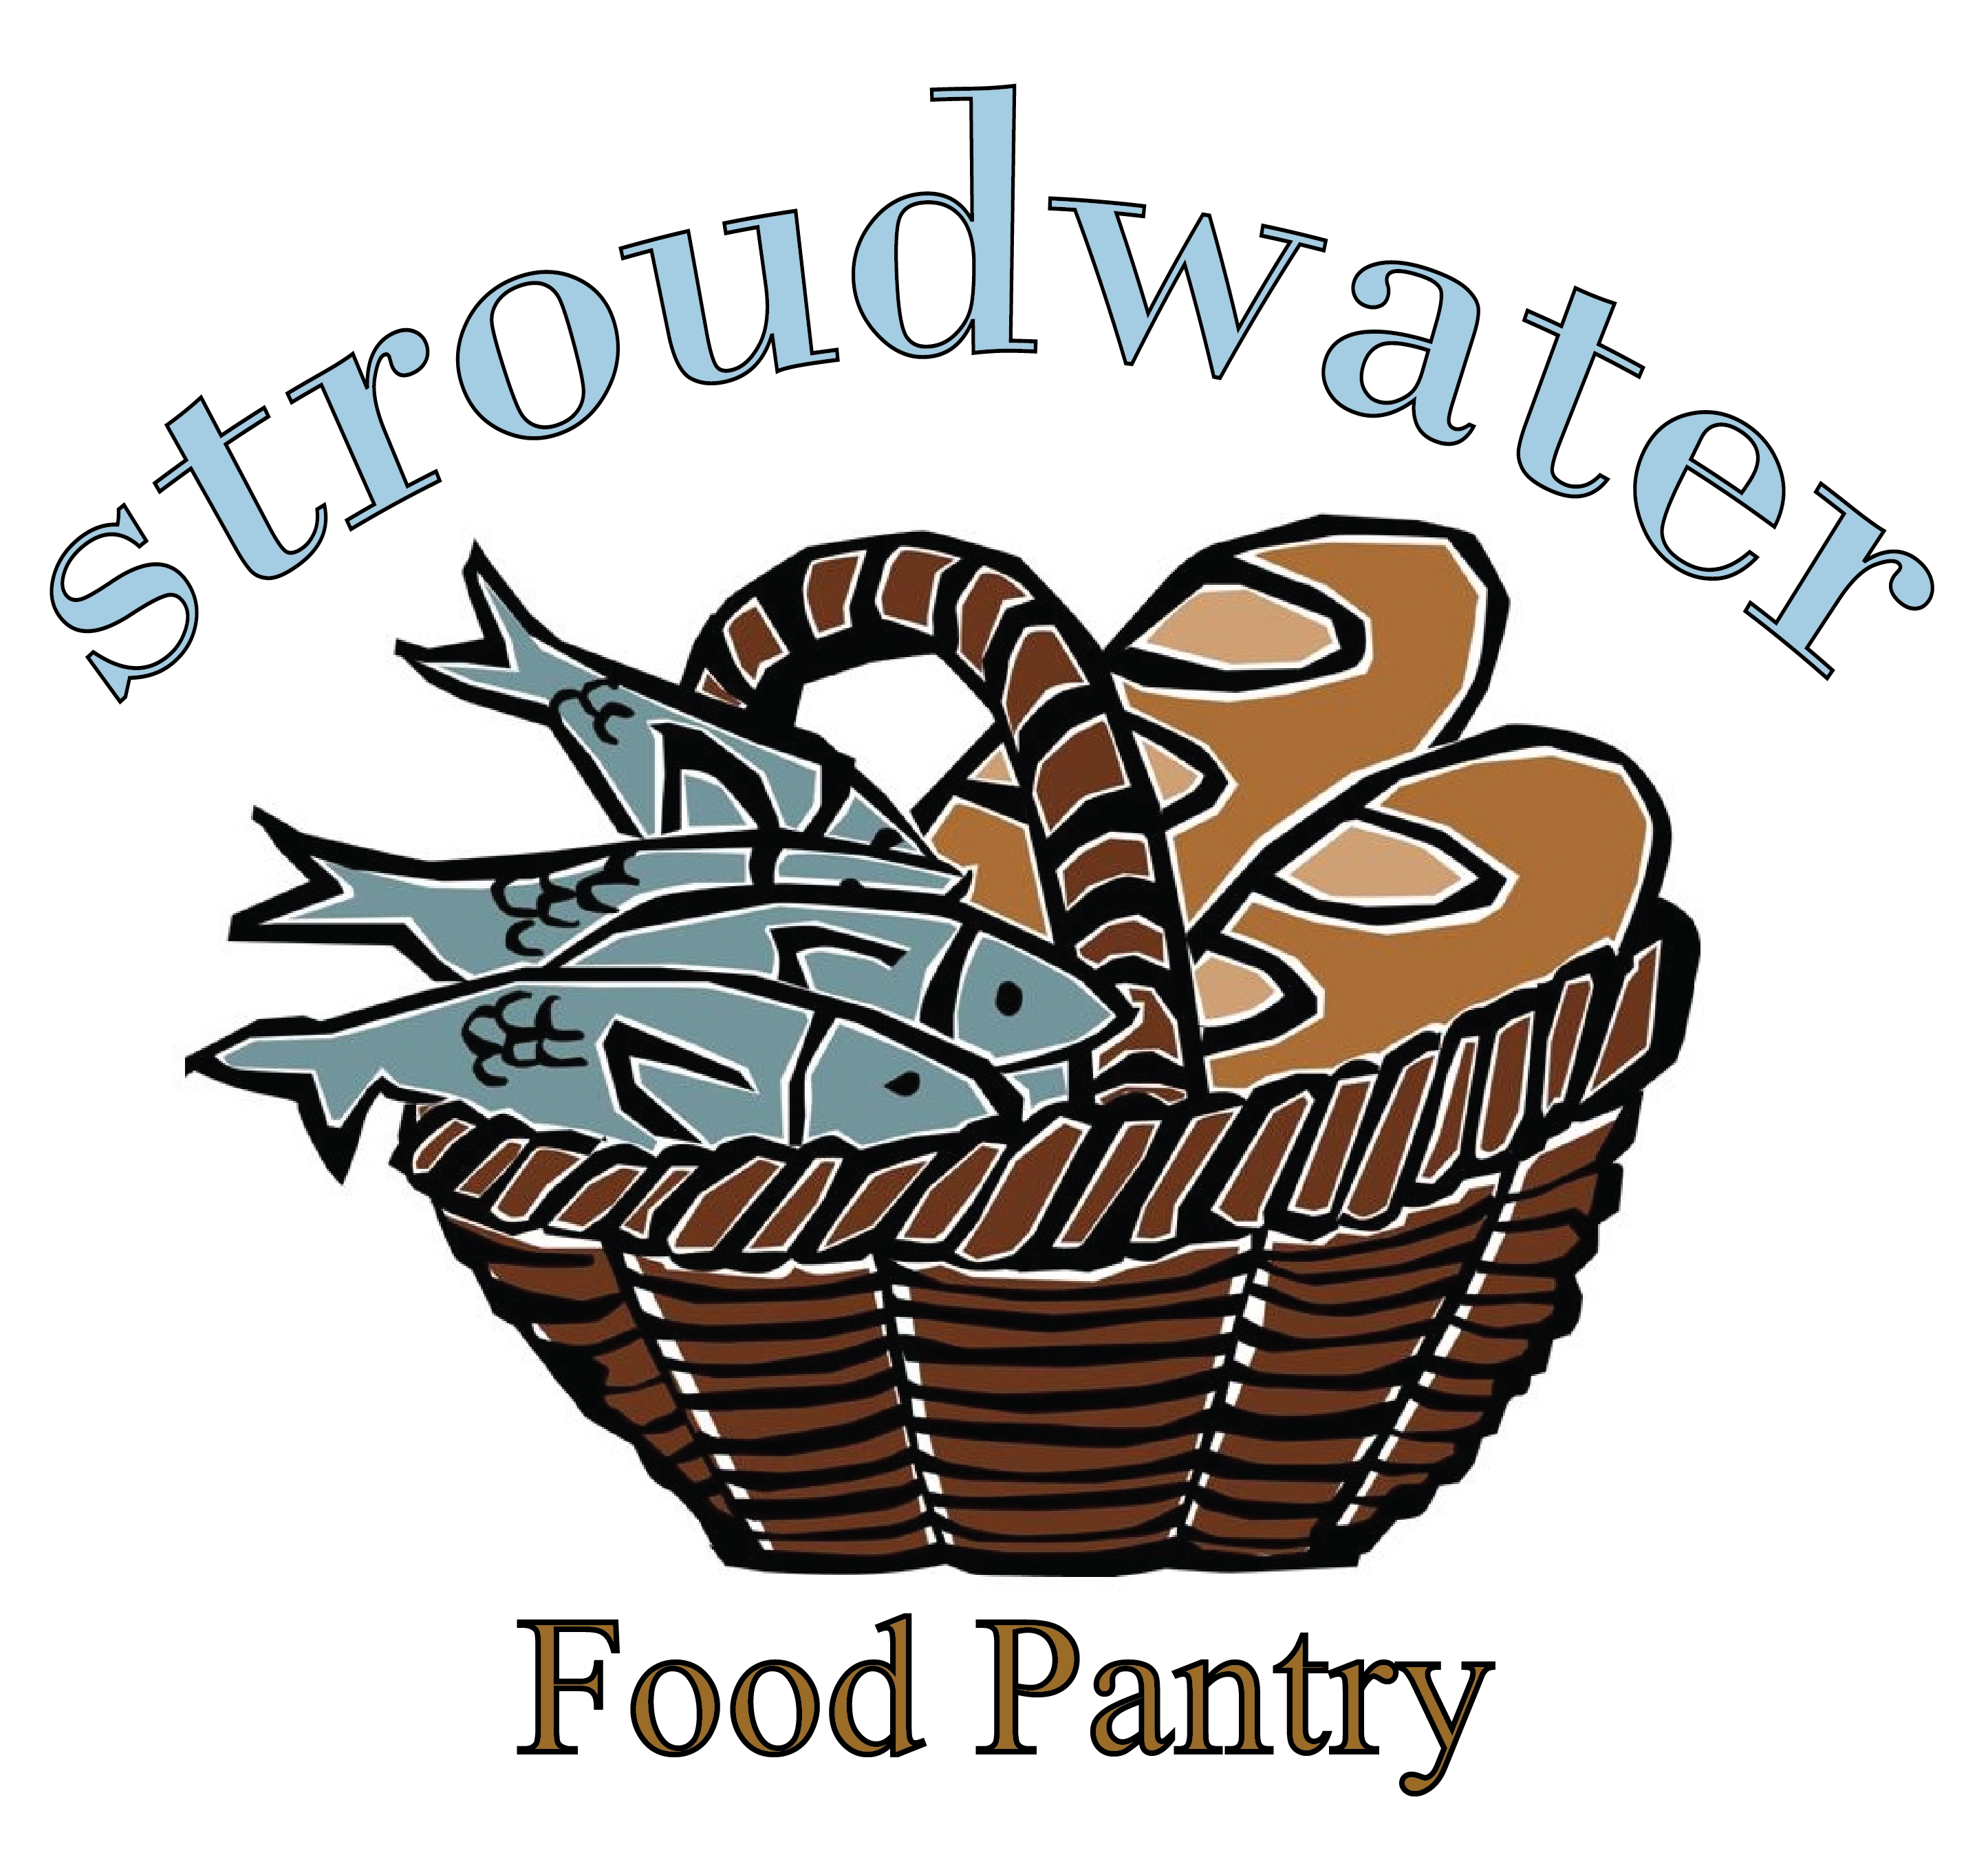 Stroudwater Food Pantry